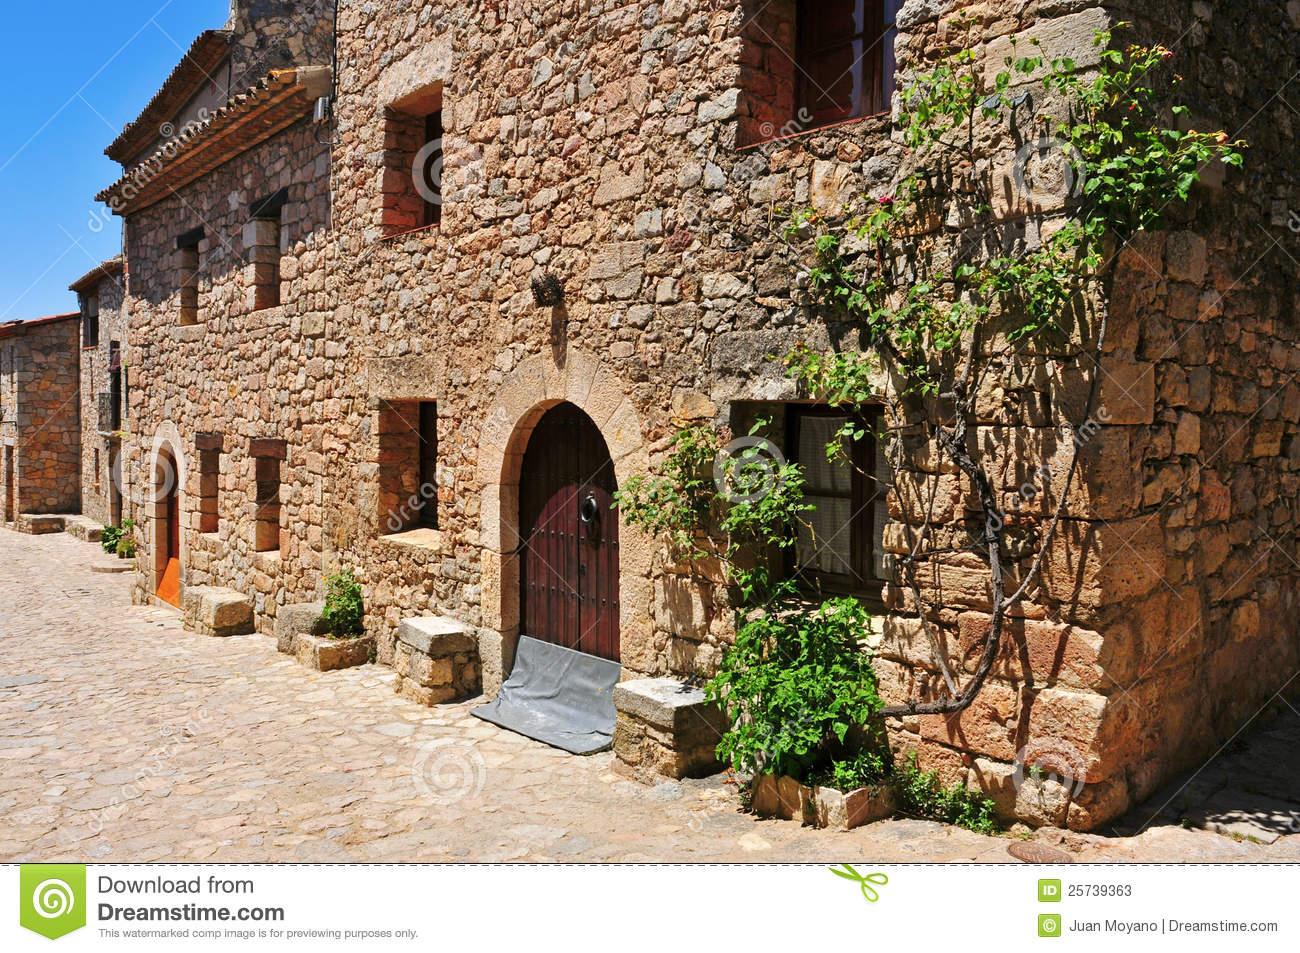 Siurana, an ancient village in Tarragona, S